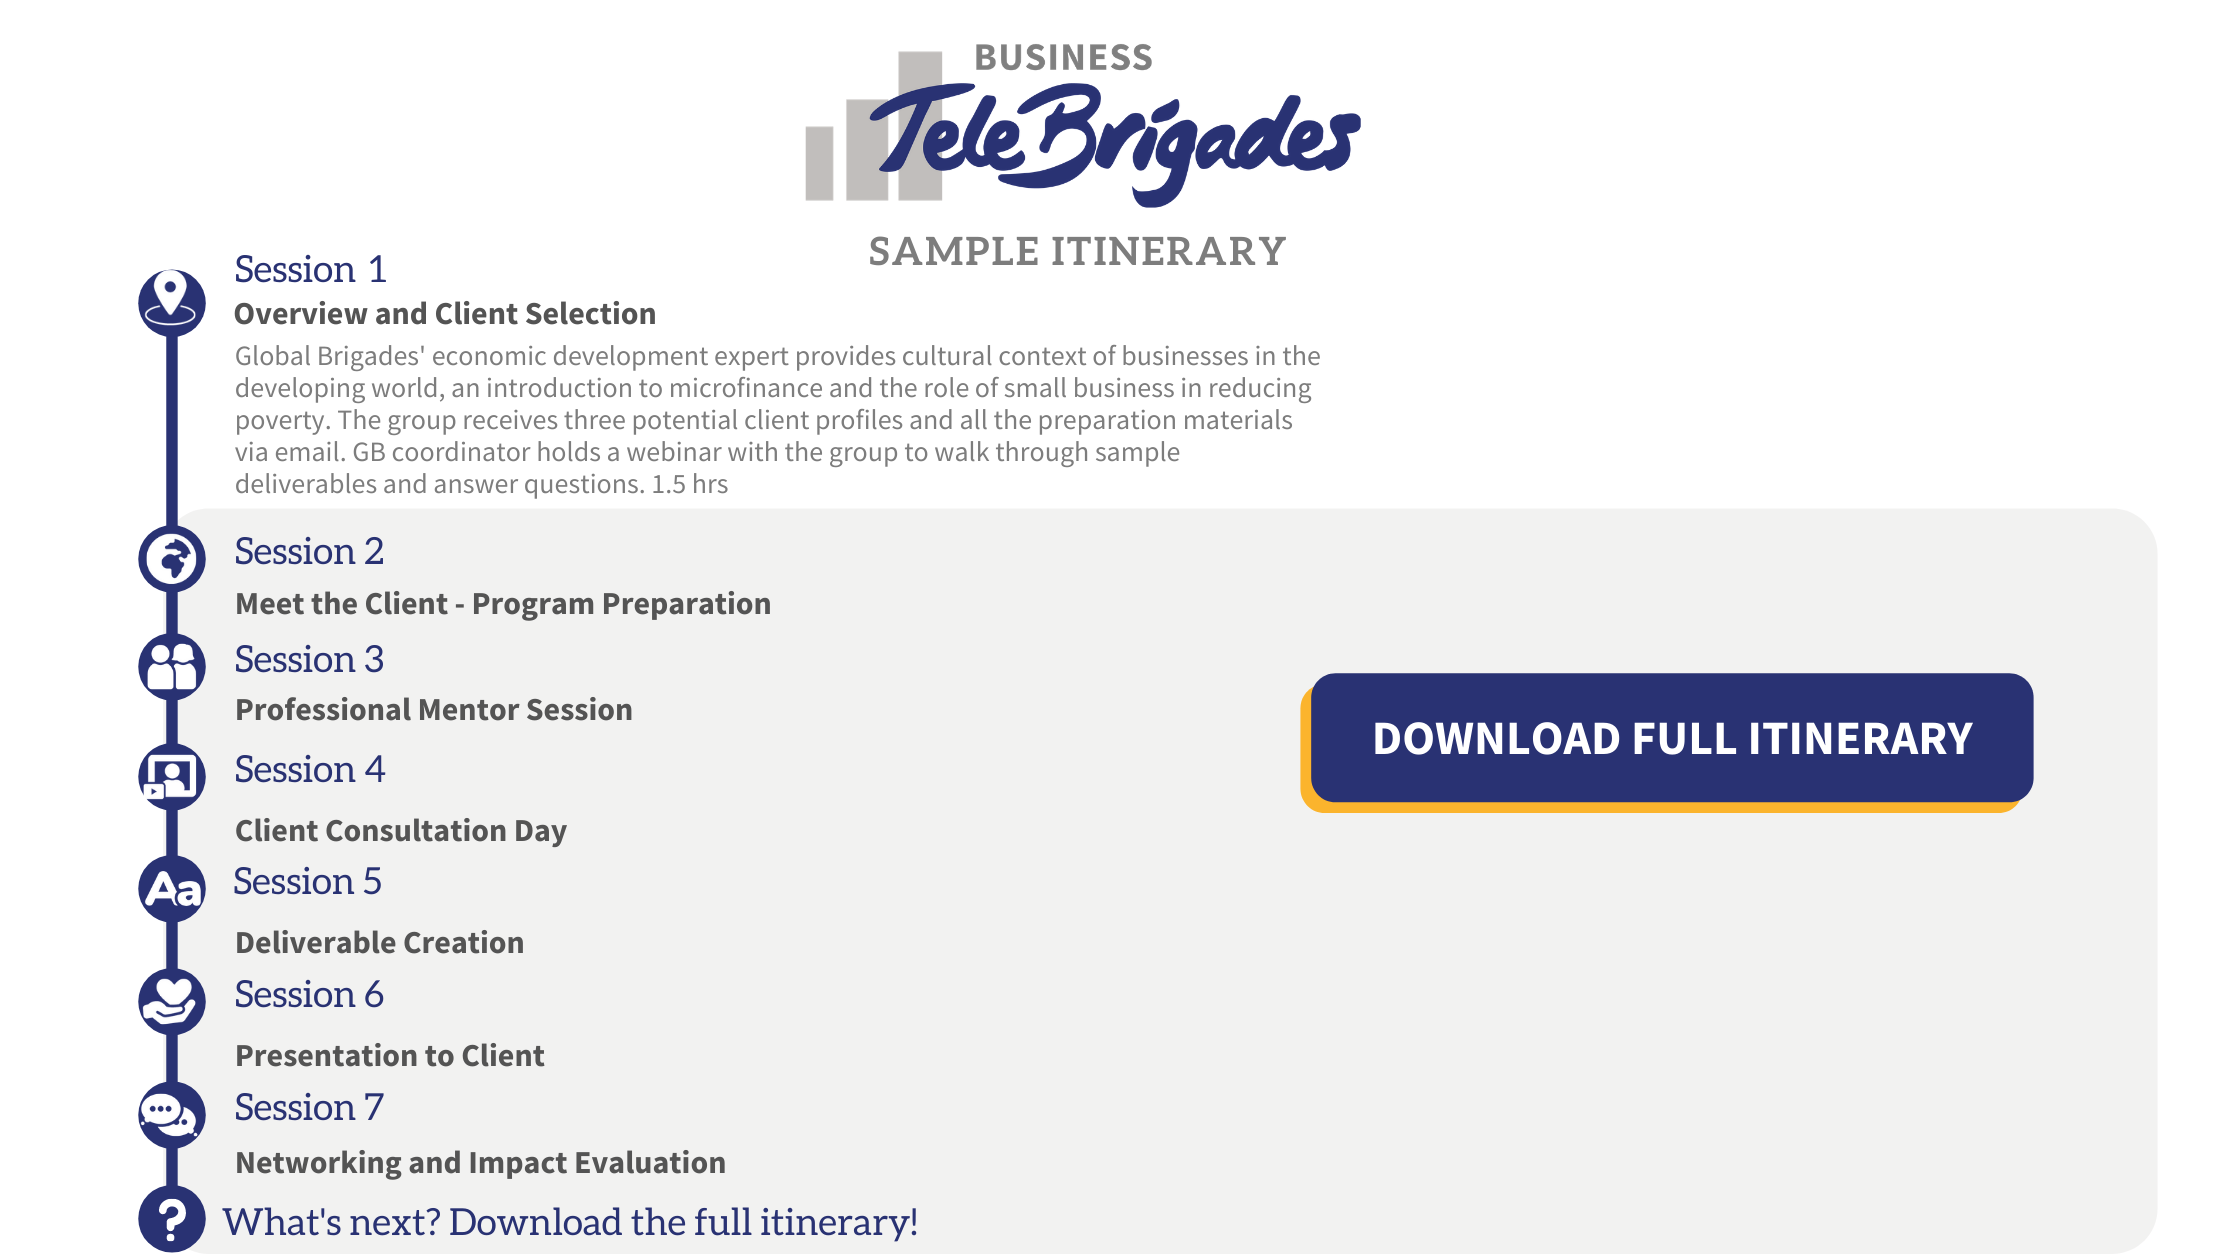 Business TeleBrigades Itinerary Download